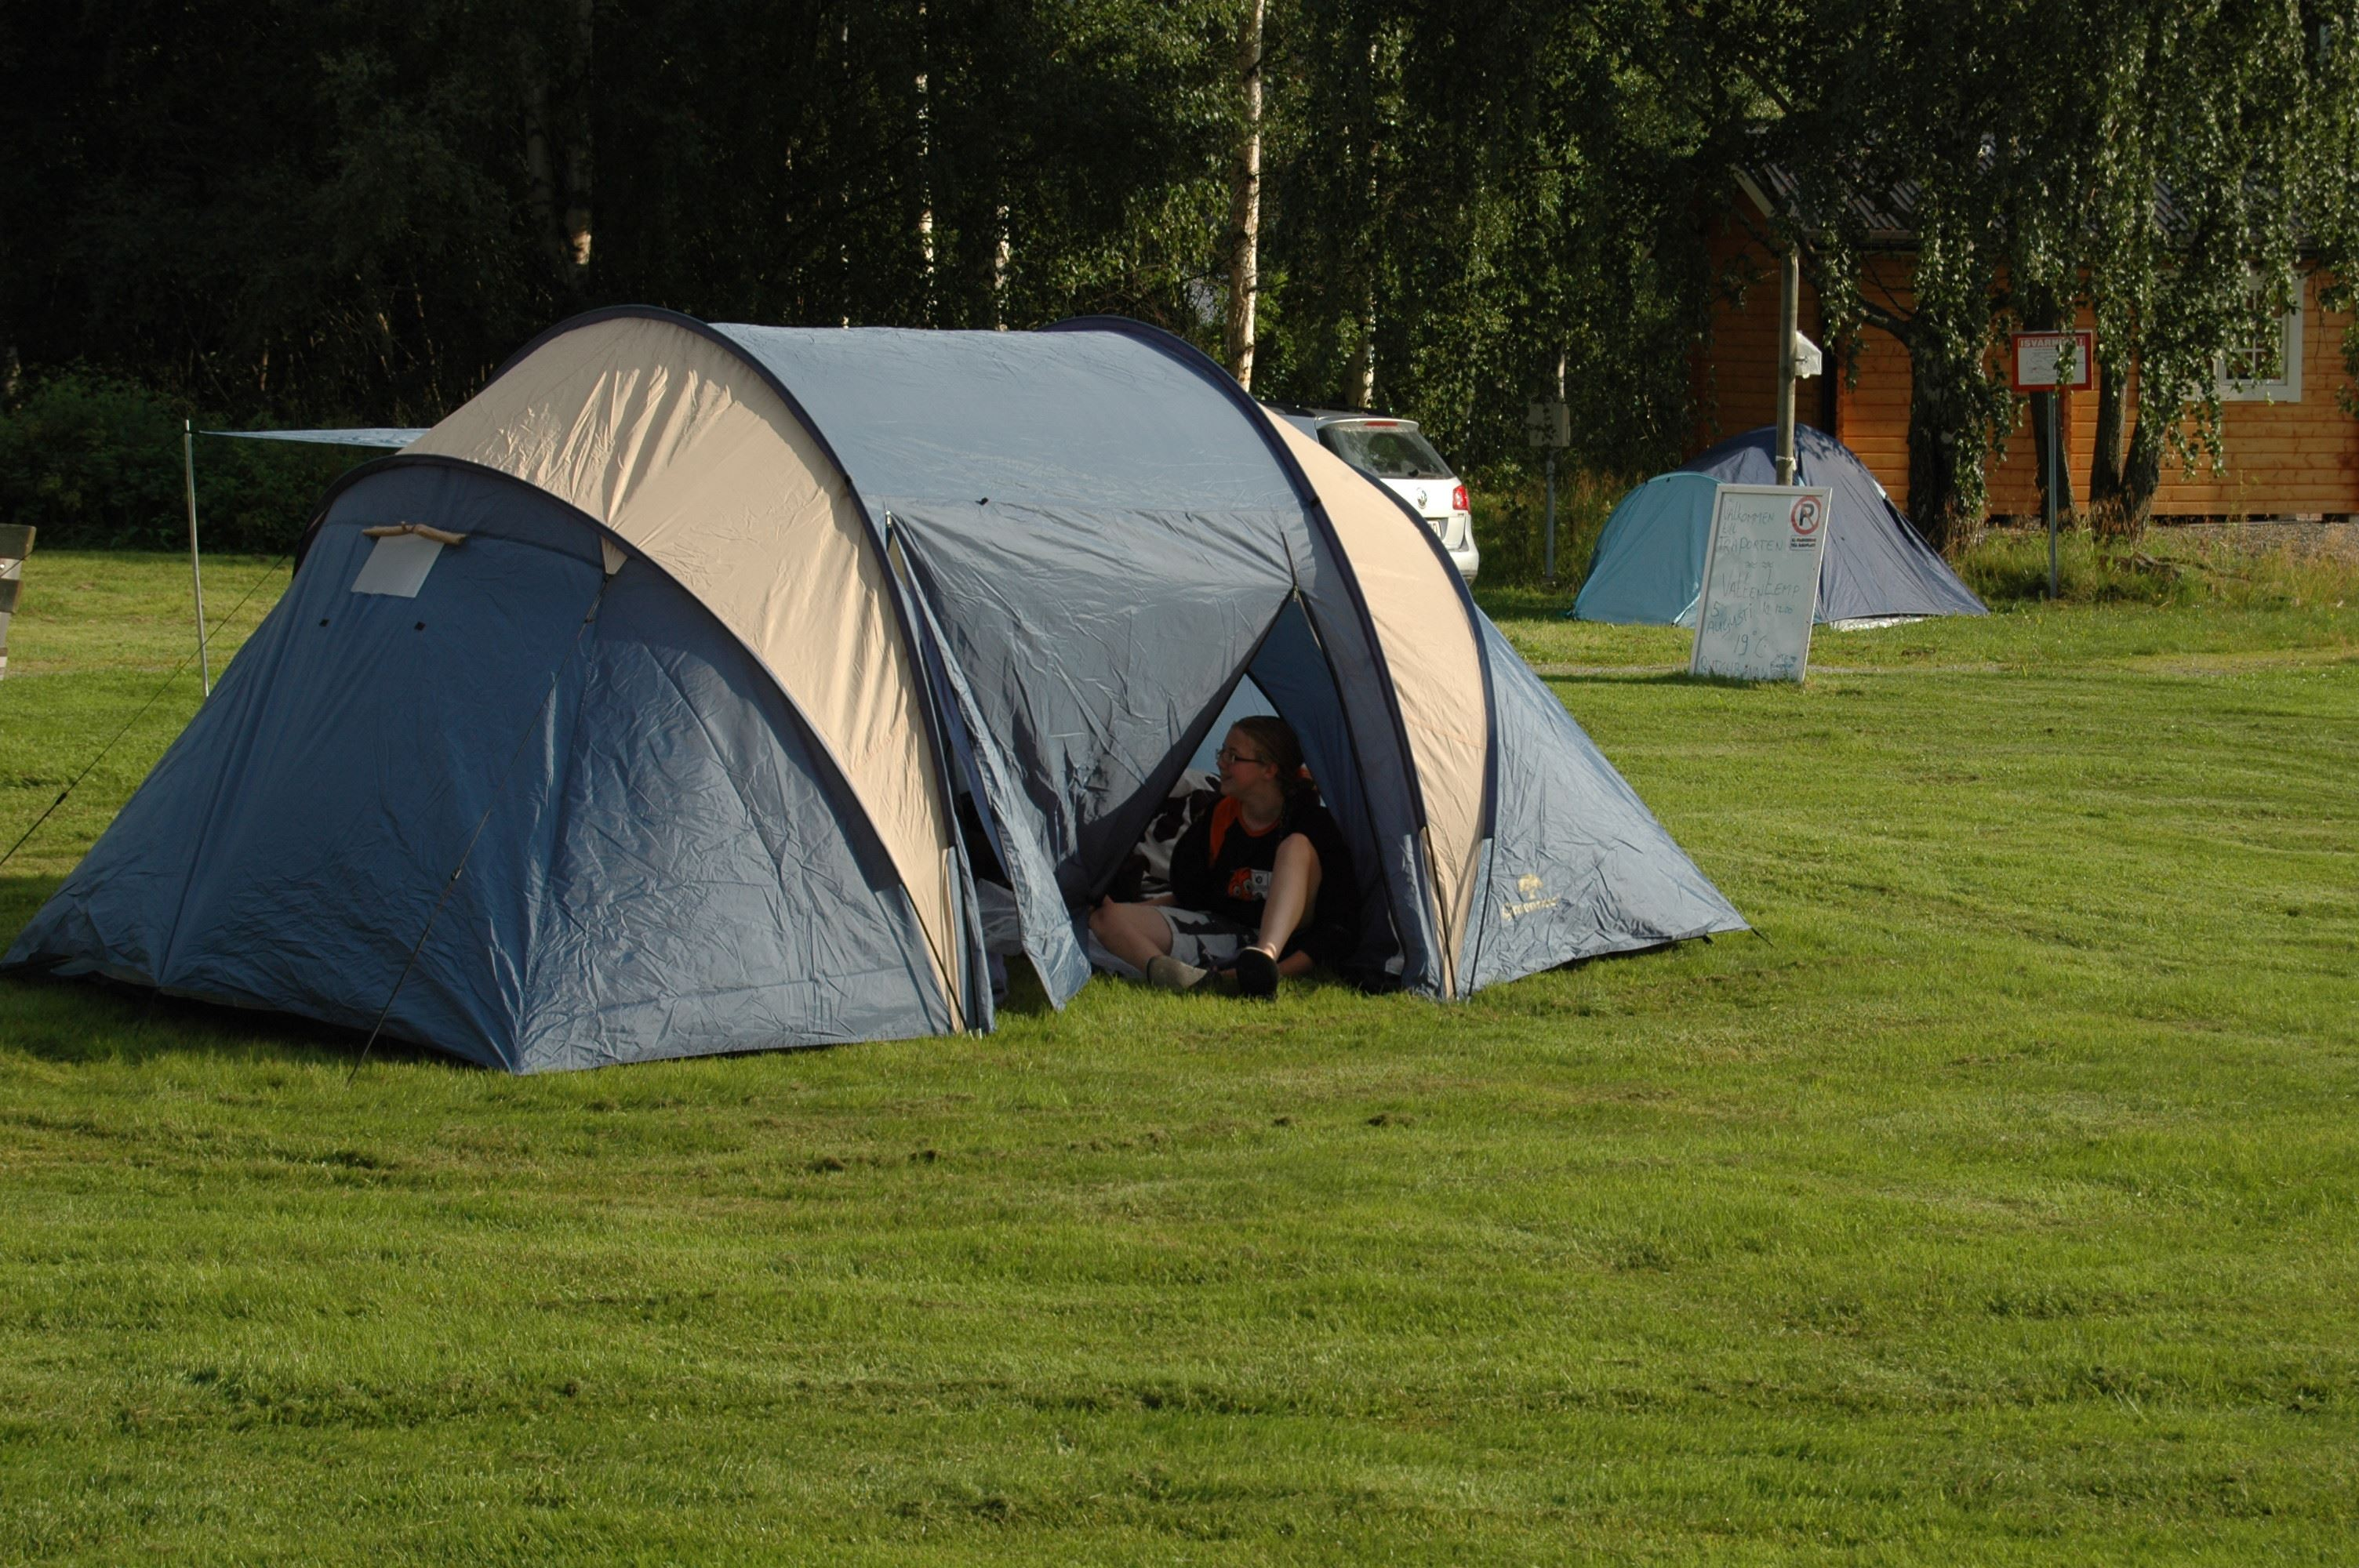 Träporten Camping/Camping